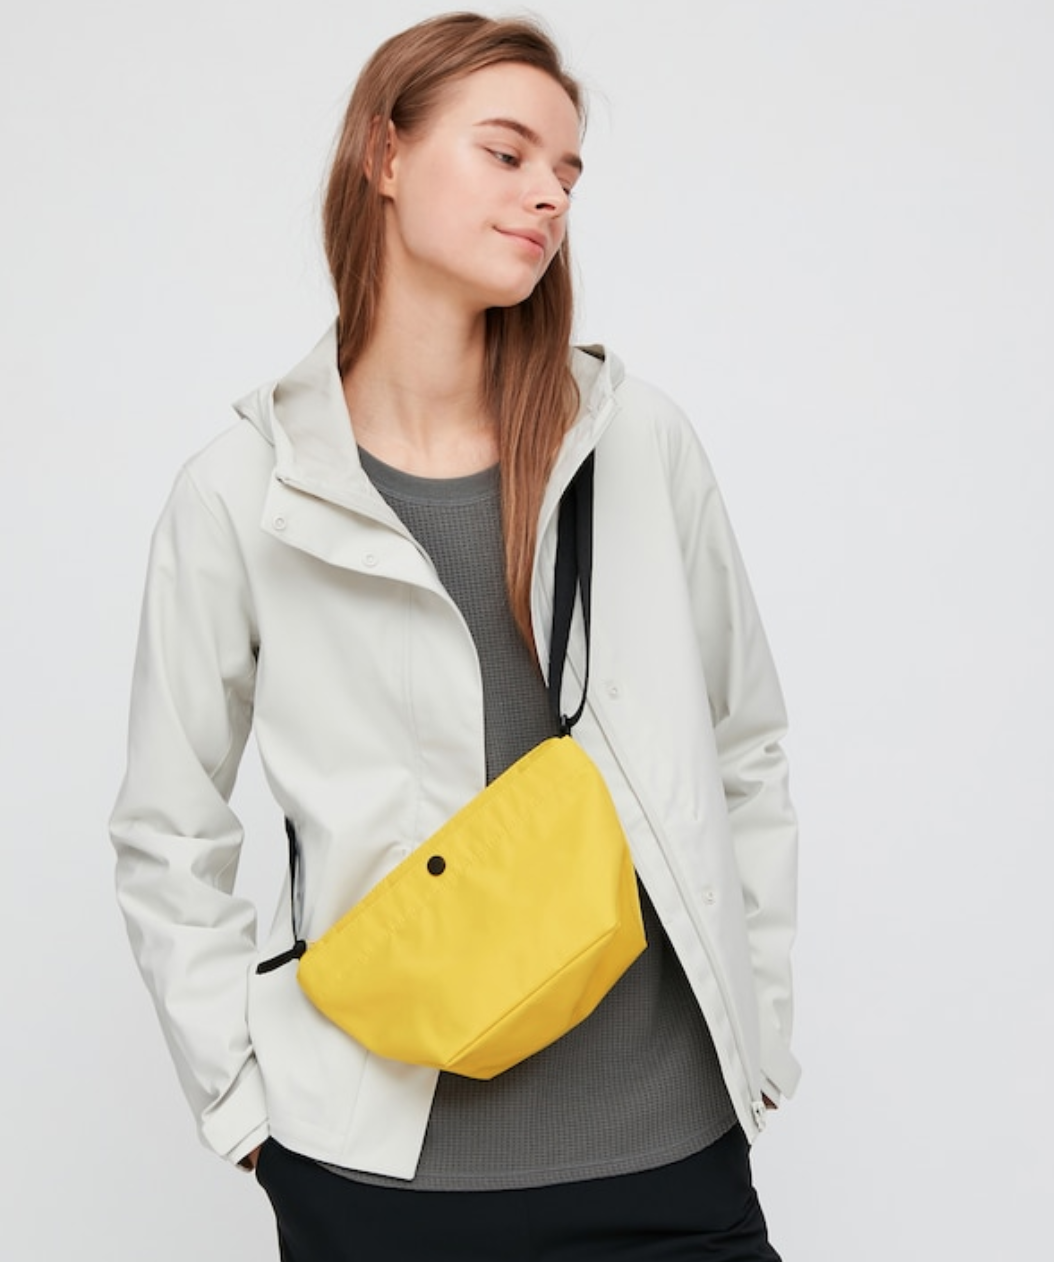 Uniqlo Nylon Mini Shoulder Bag